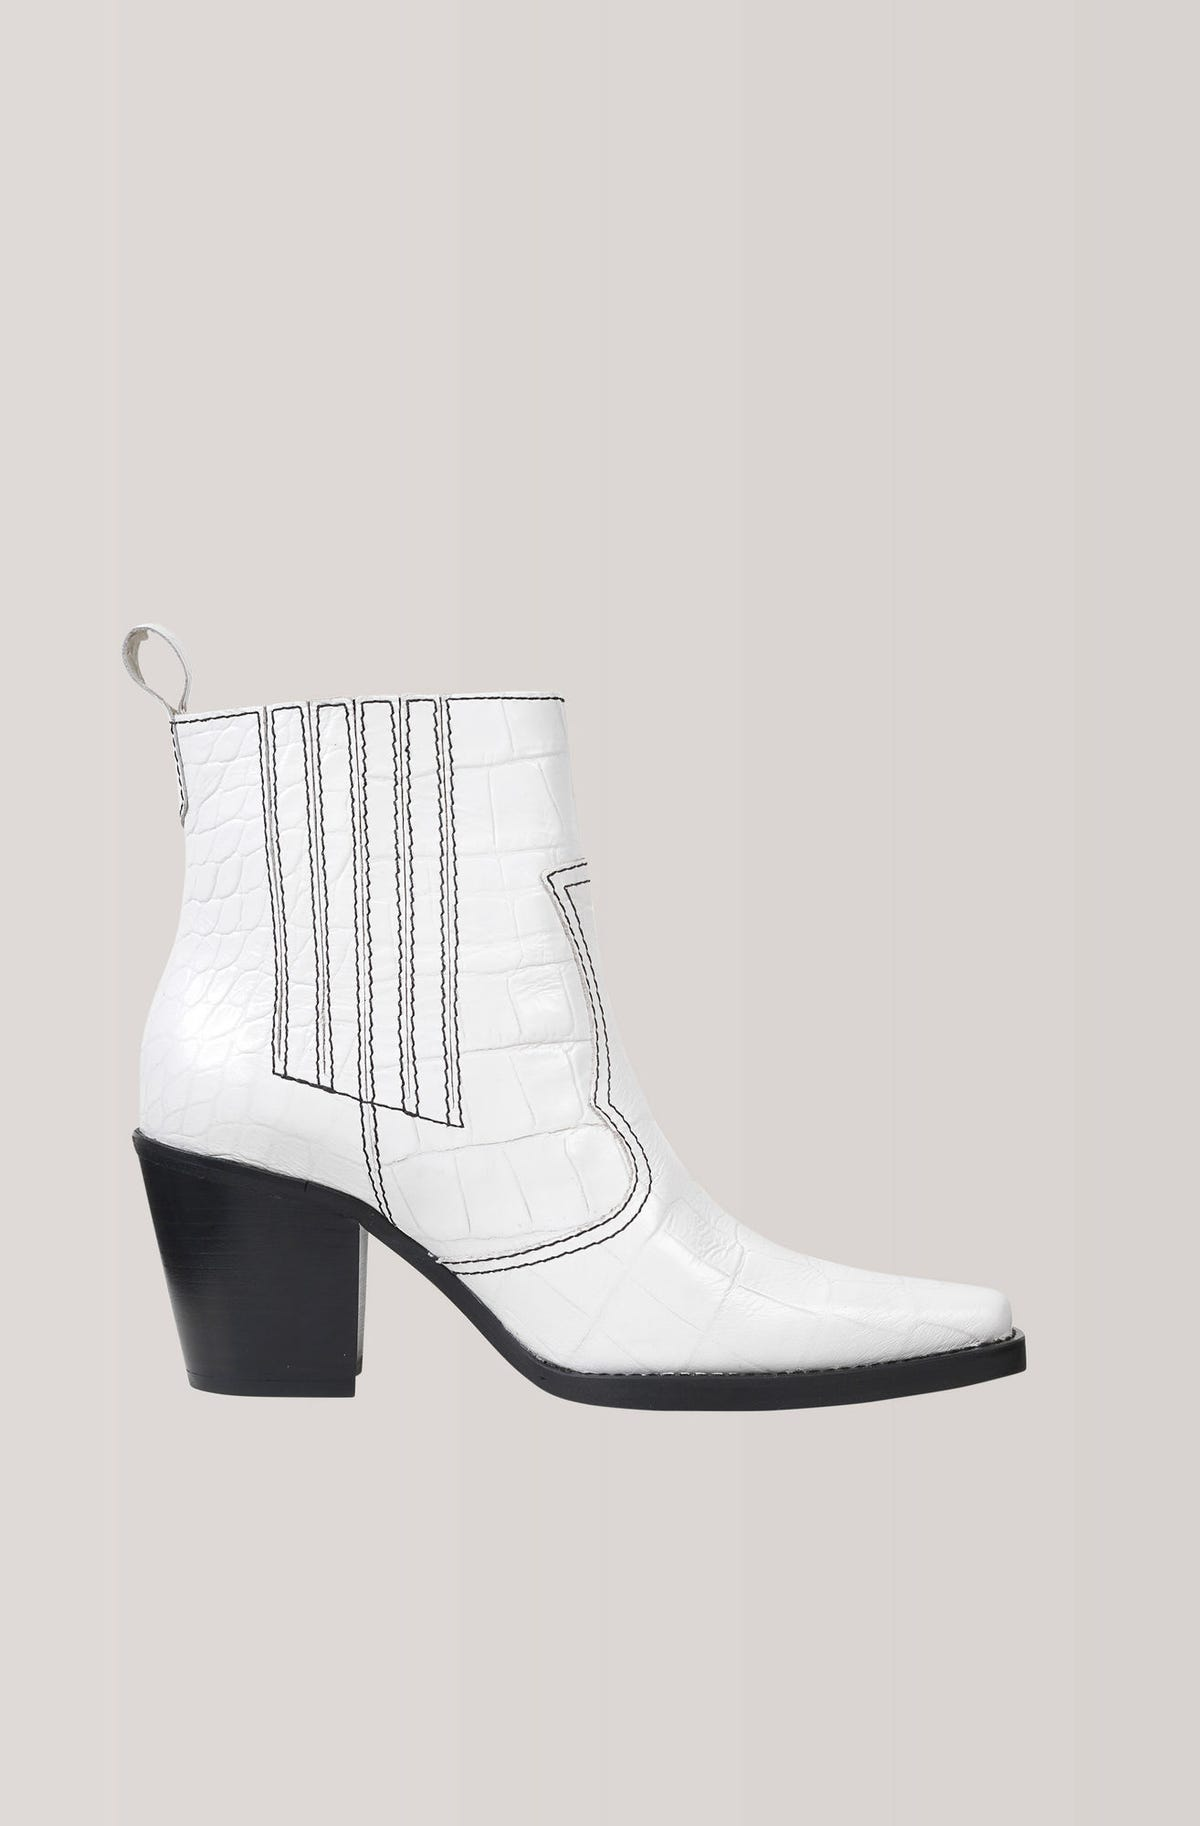 12b3d149f43 White Boot Trend Fall 2018 For Women, Best Shoe Styles